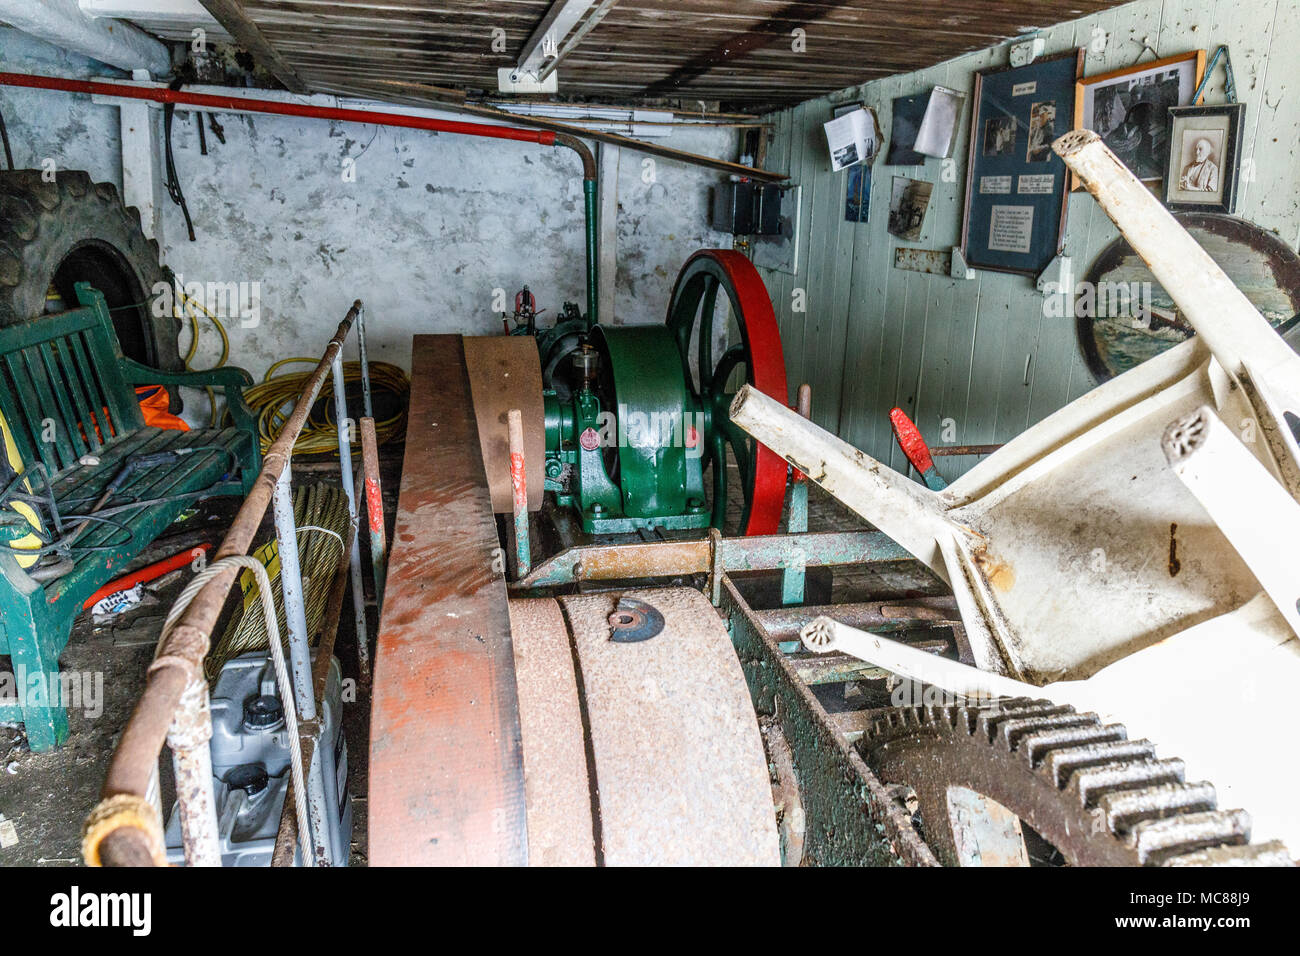 Cadgwith The Old Now Abandoned Stationary Engine Driving A Wire How To Winch Used Haul Fishing Boats Out Replaced By Boring Electric